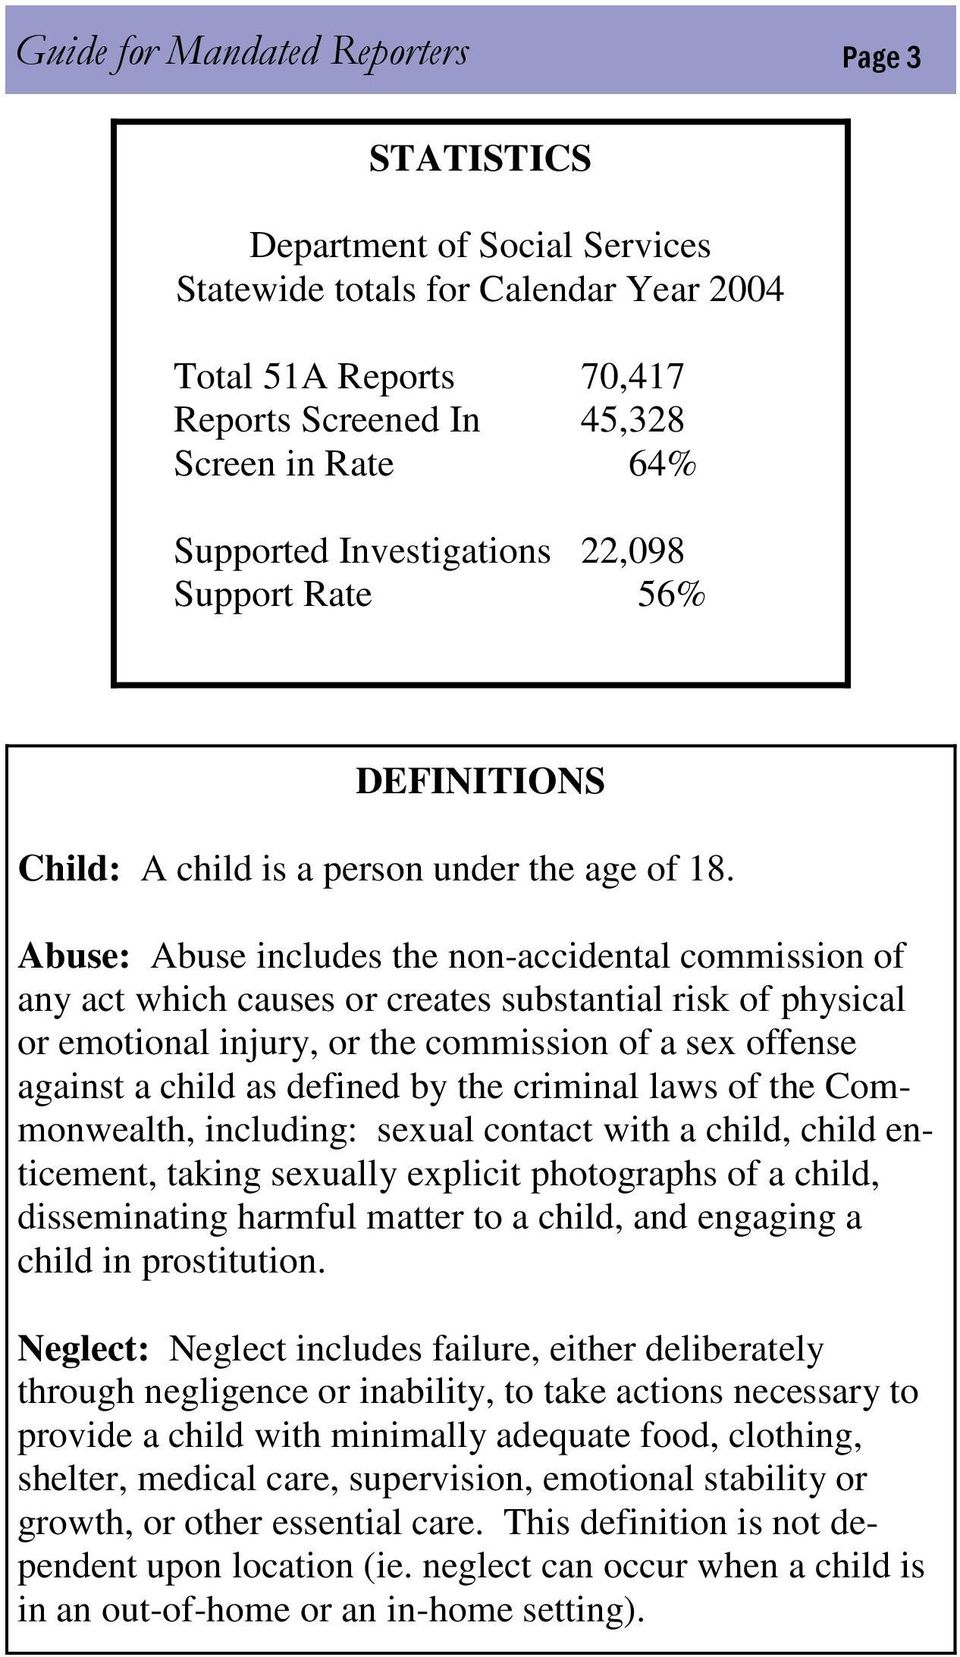 child abuse & neglect - pdf